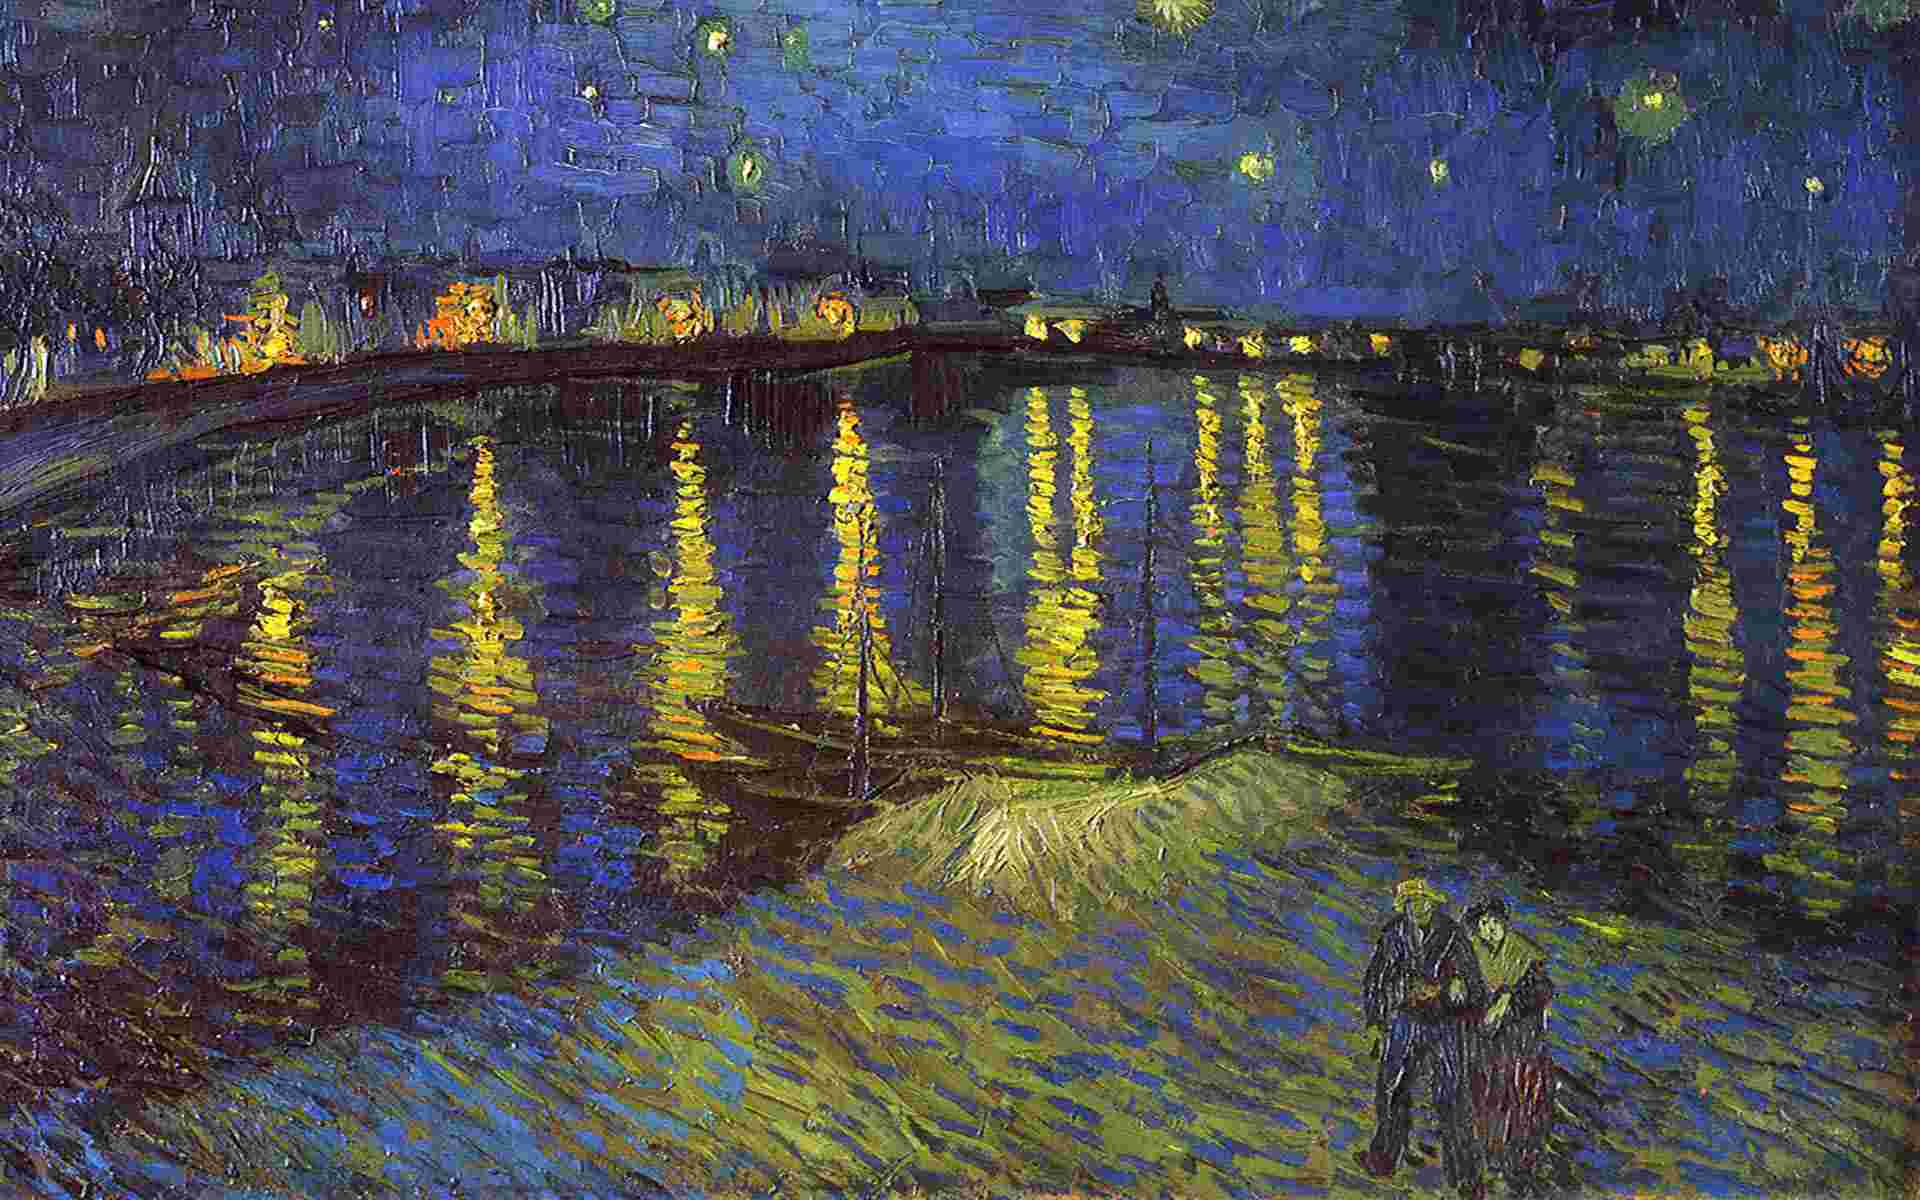 http://weartlovers.wehomeowners.com/wp-content/uploads/2016/07/Vincent-Van-Gogh-Starry-Night.jpg